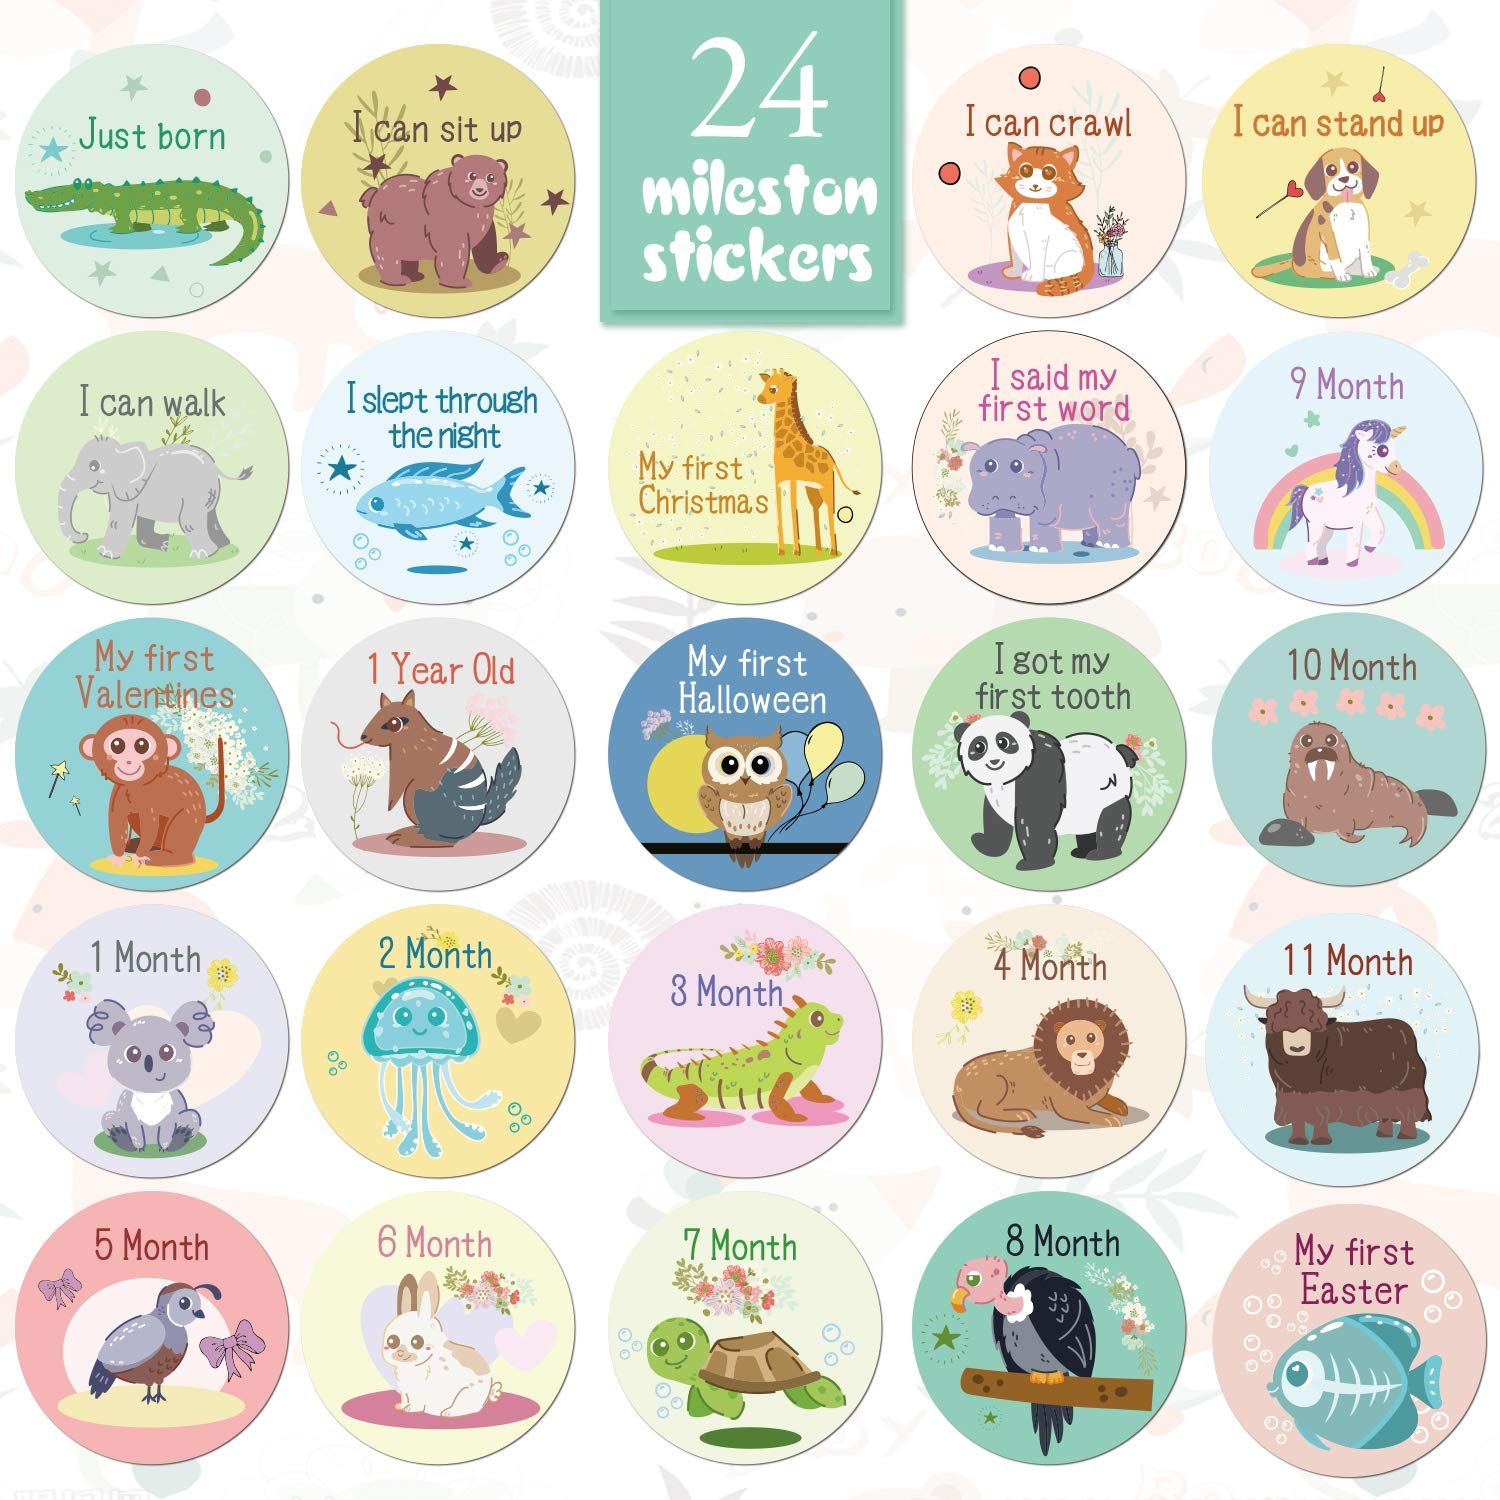 Baby Milestone Stickers,Baby Monthly Stickers 0-12 Month Stickers,Animal Self-Adhesive Baby Boy Milestone Stickers Set of 24